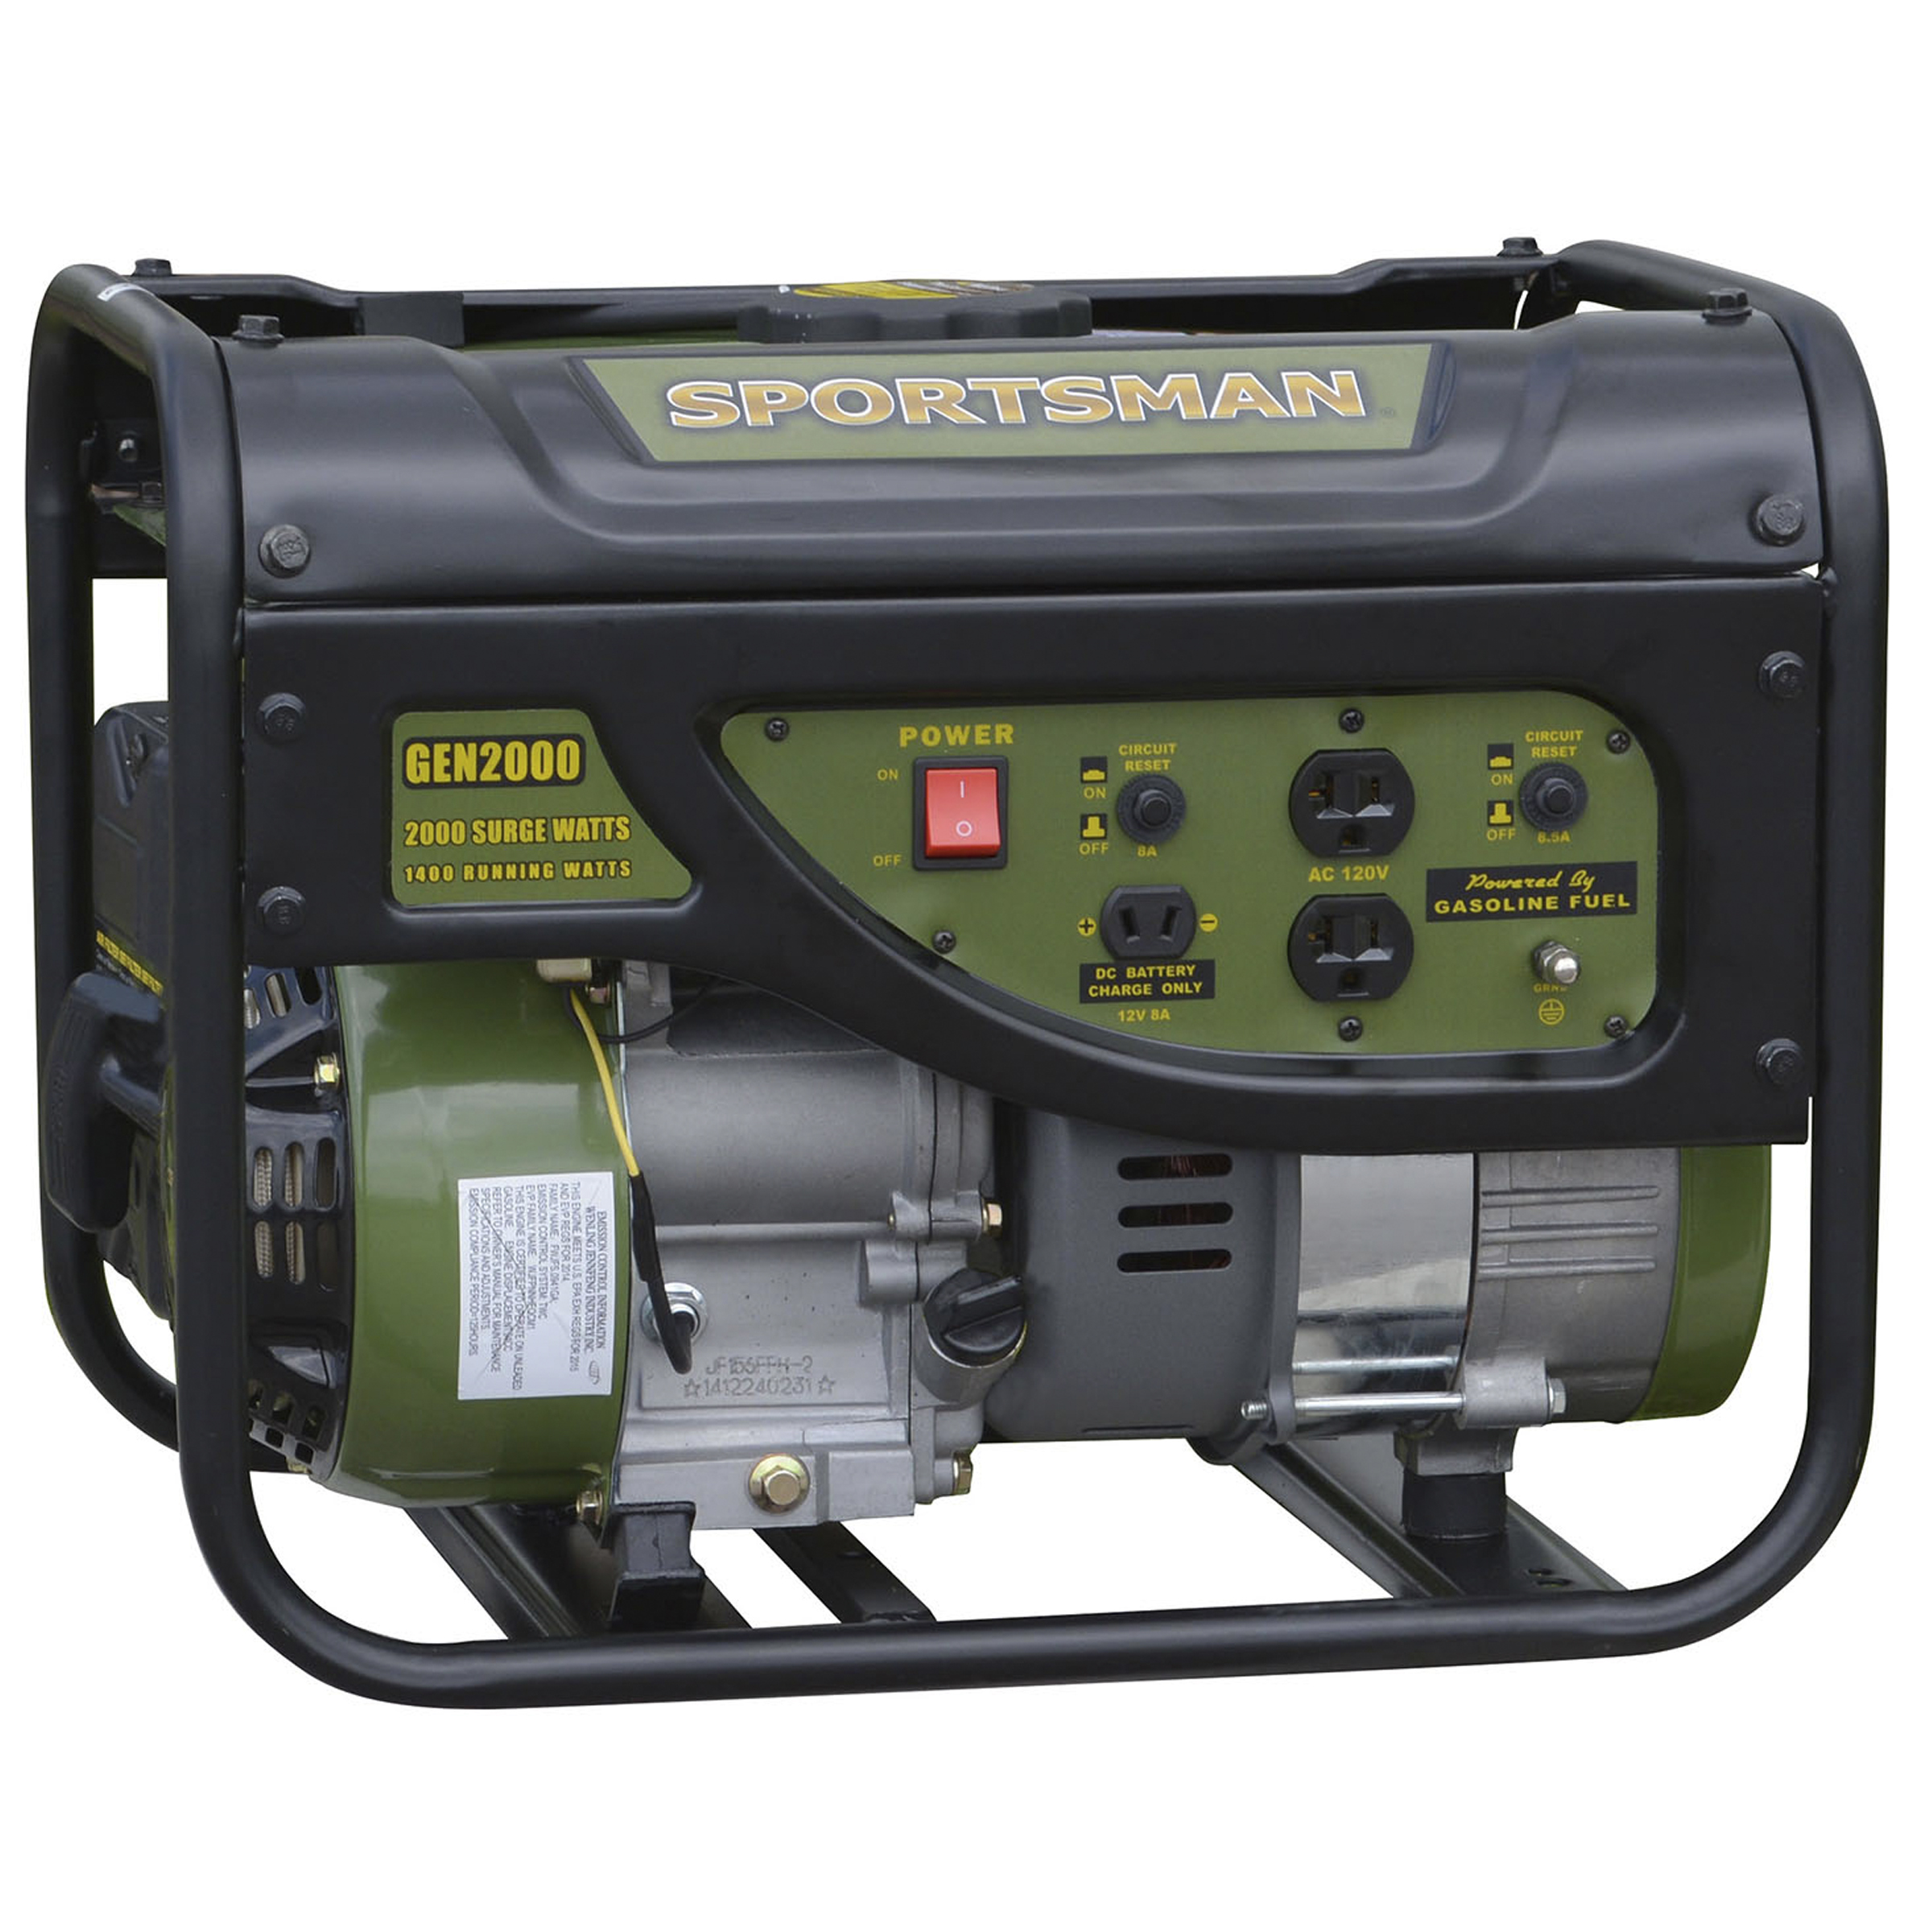 Generator Wattage Worksheet : Sportsman surge watt gas generator